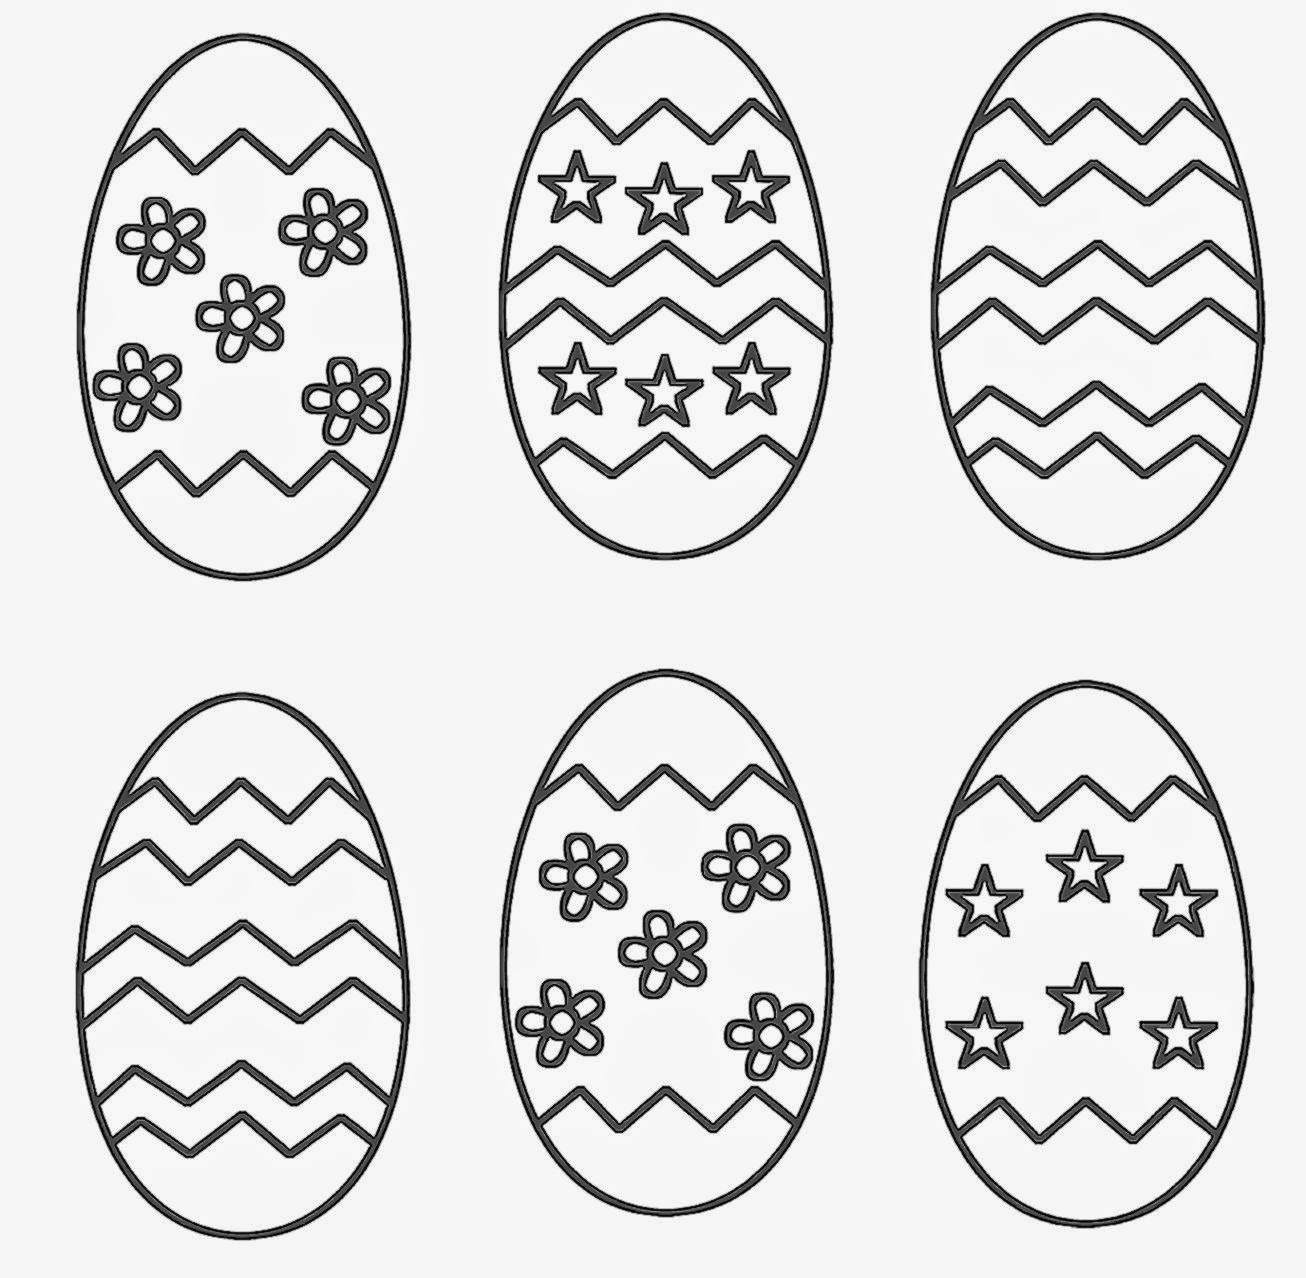 Easter Eggs Surprise Coloring Page | crayola.com | 1278x1306